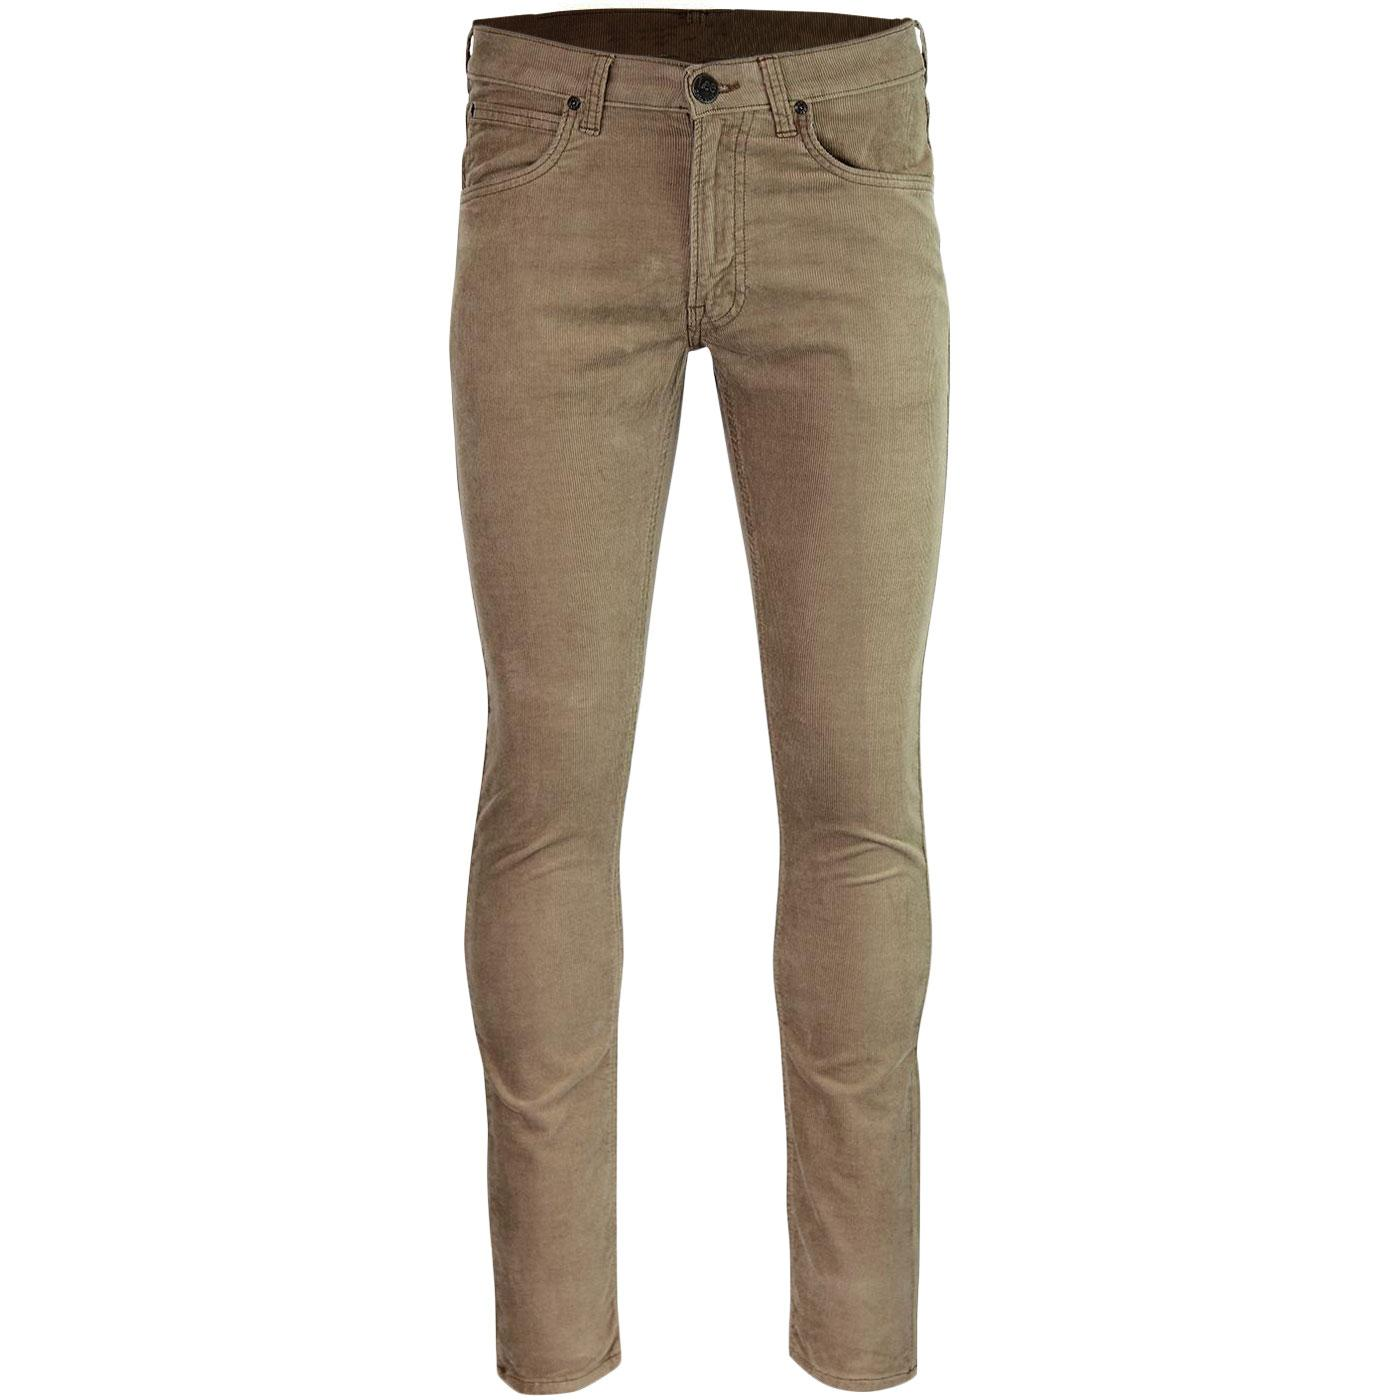 Luke LEE Mens Mod Slim Tapered Cord Jeans ANTELOPE